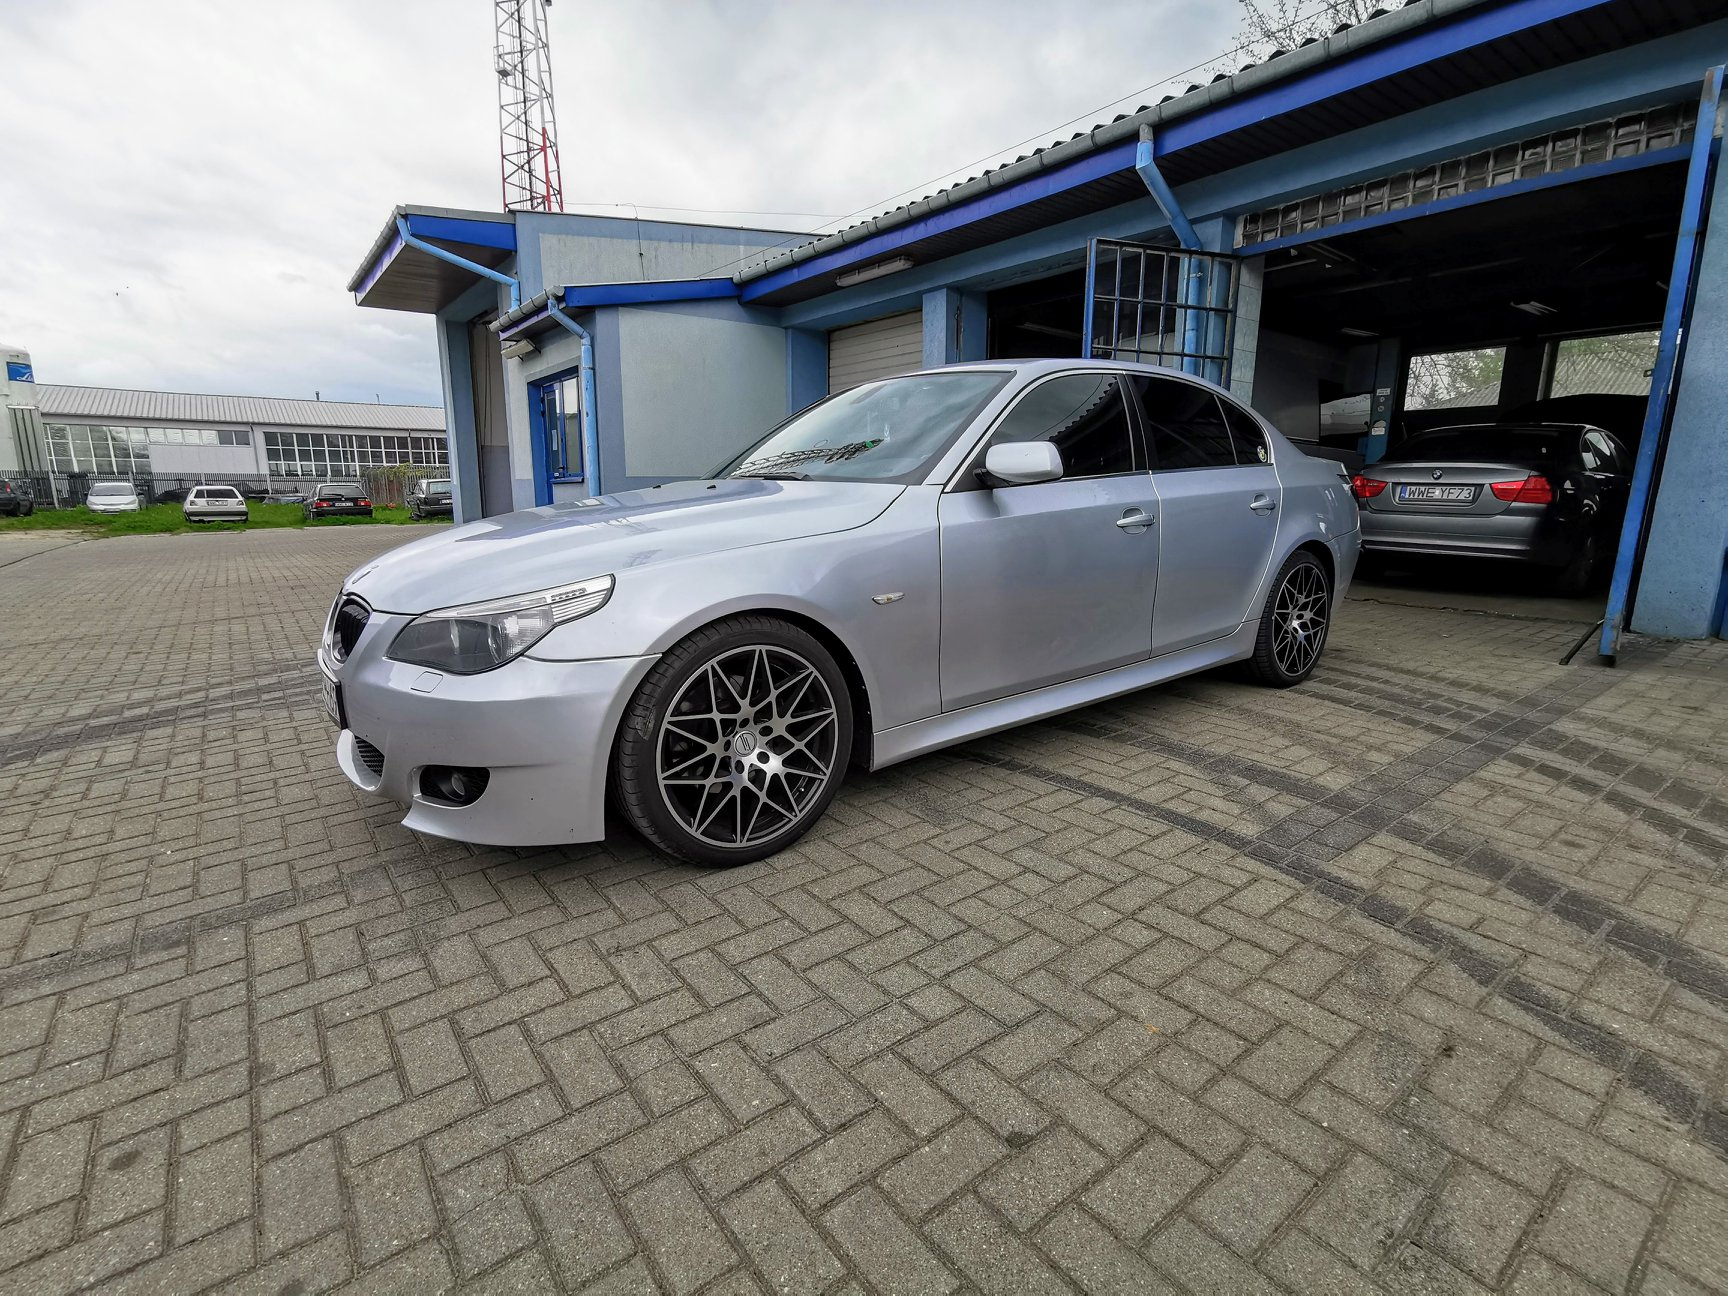 BMW E60 530D 218KM >> 286KM 600Nm